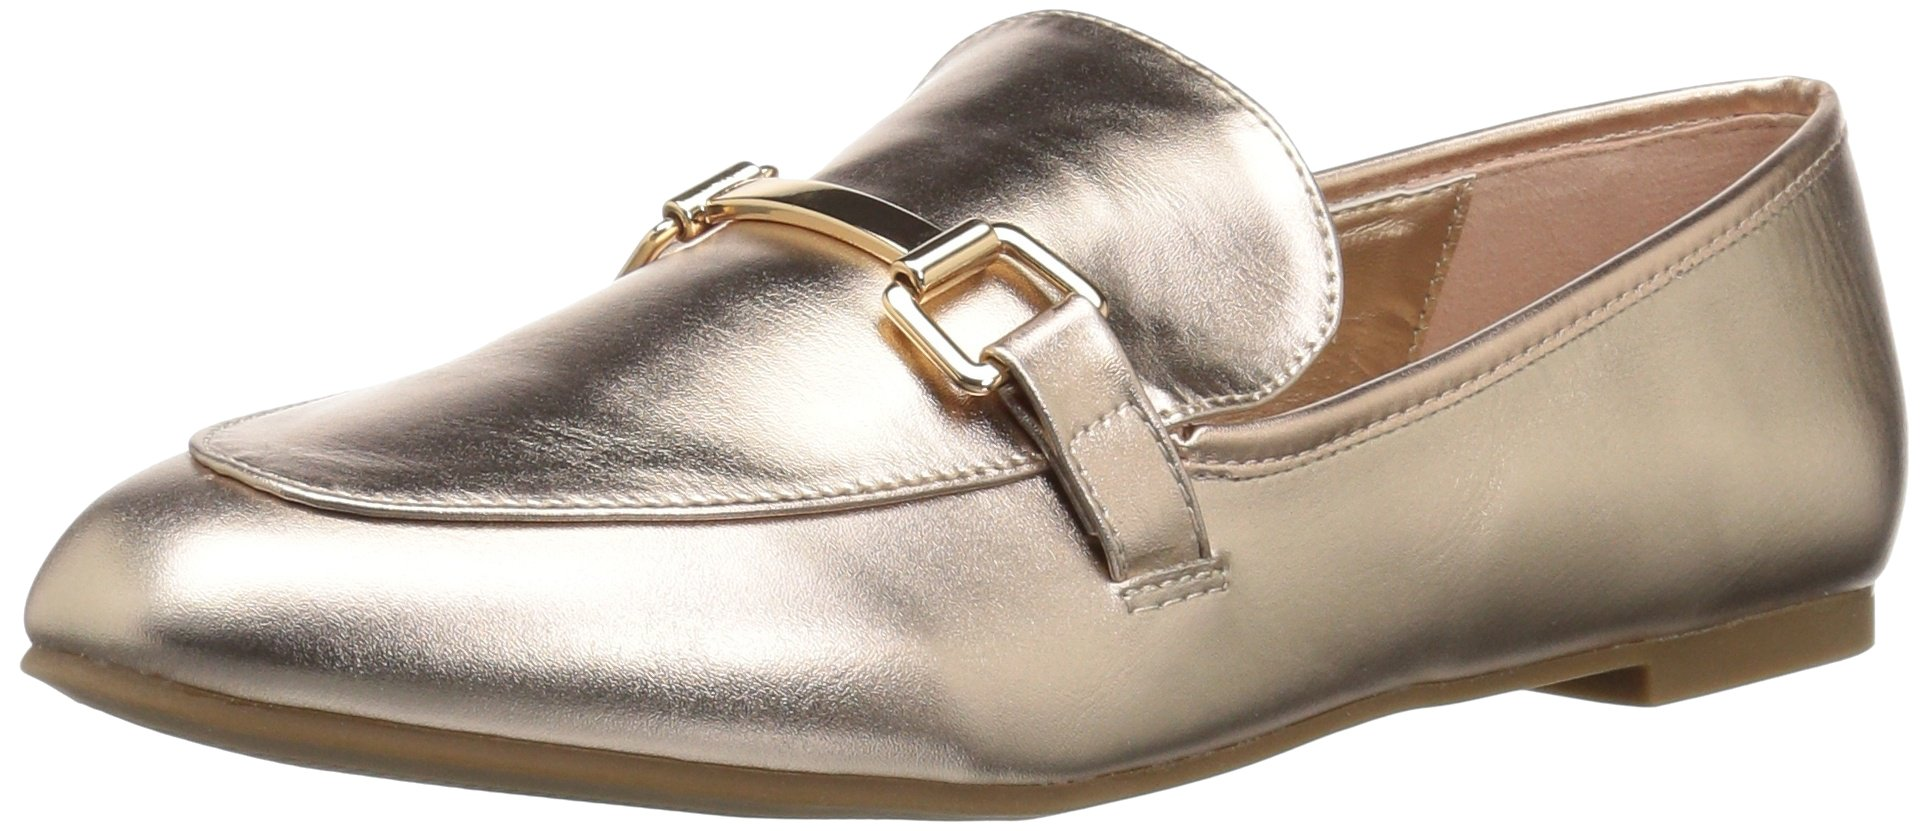 Rampage Women's Delila Comfortable Flat Fashion Great for Work Loafer, Rose Gold Smooth, 6 Medium US